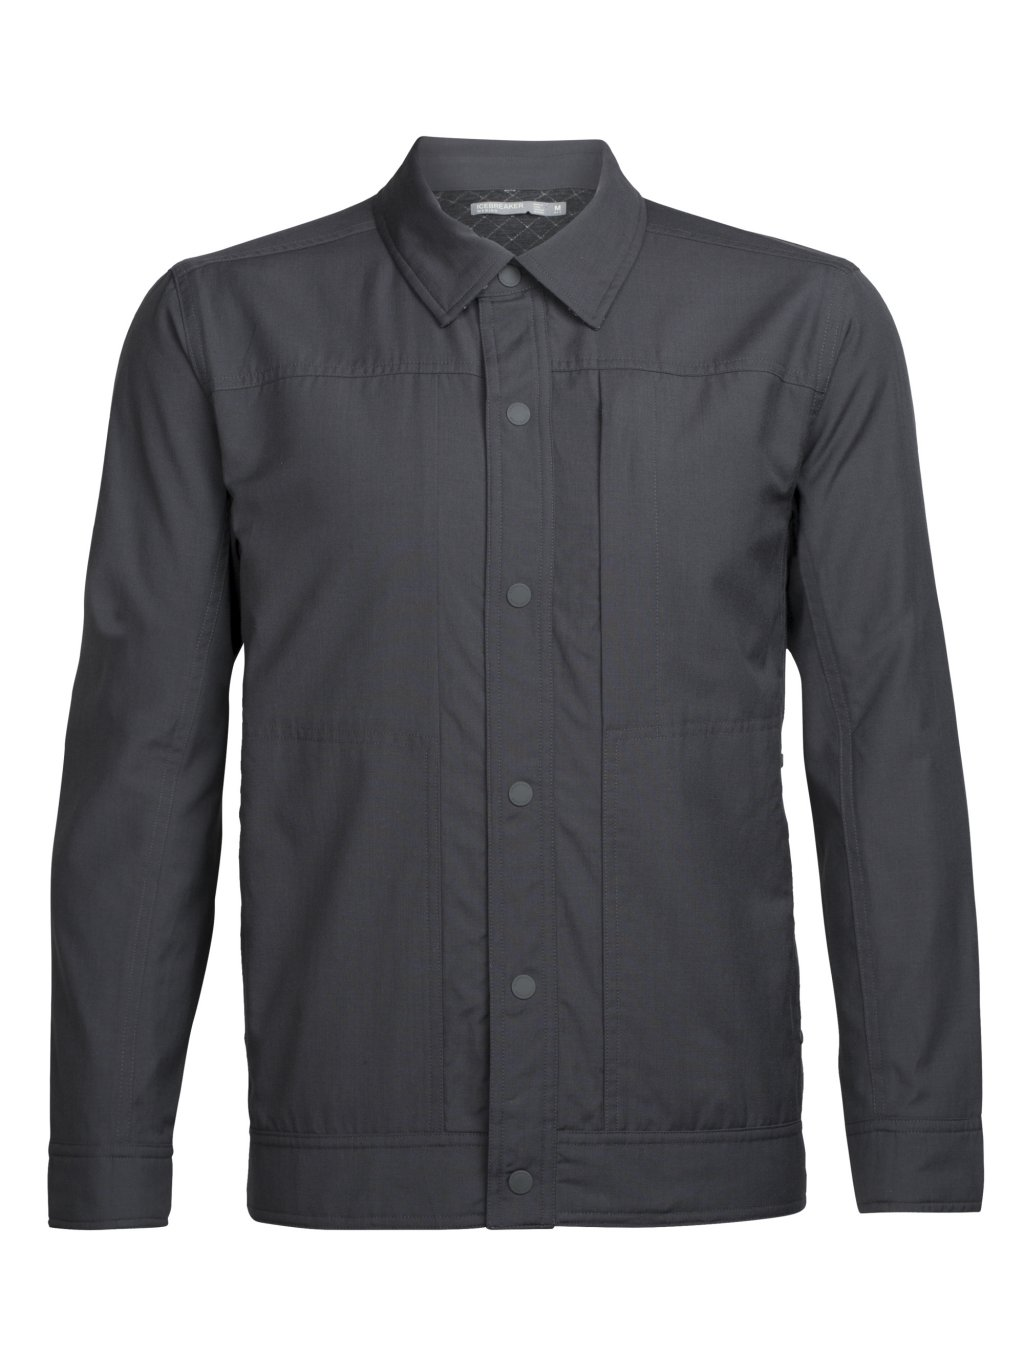 SS18 MEN ESCAPE THERMO JACKET 104144001 1